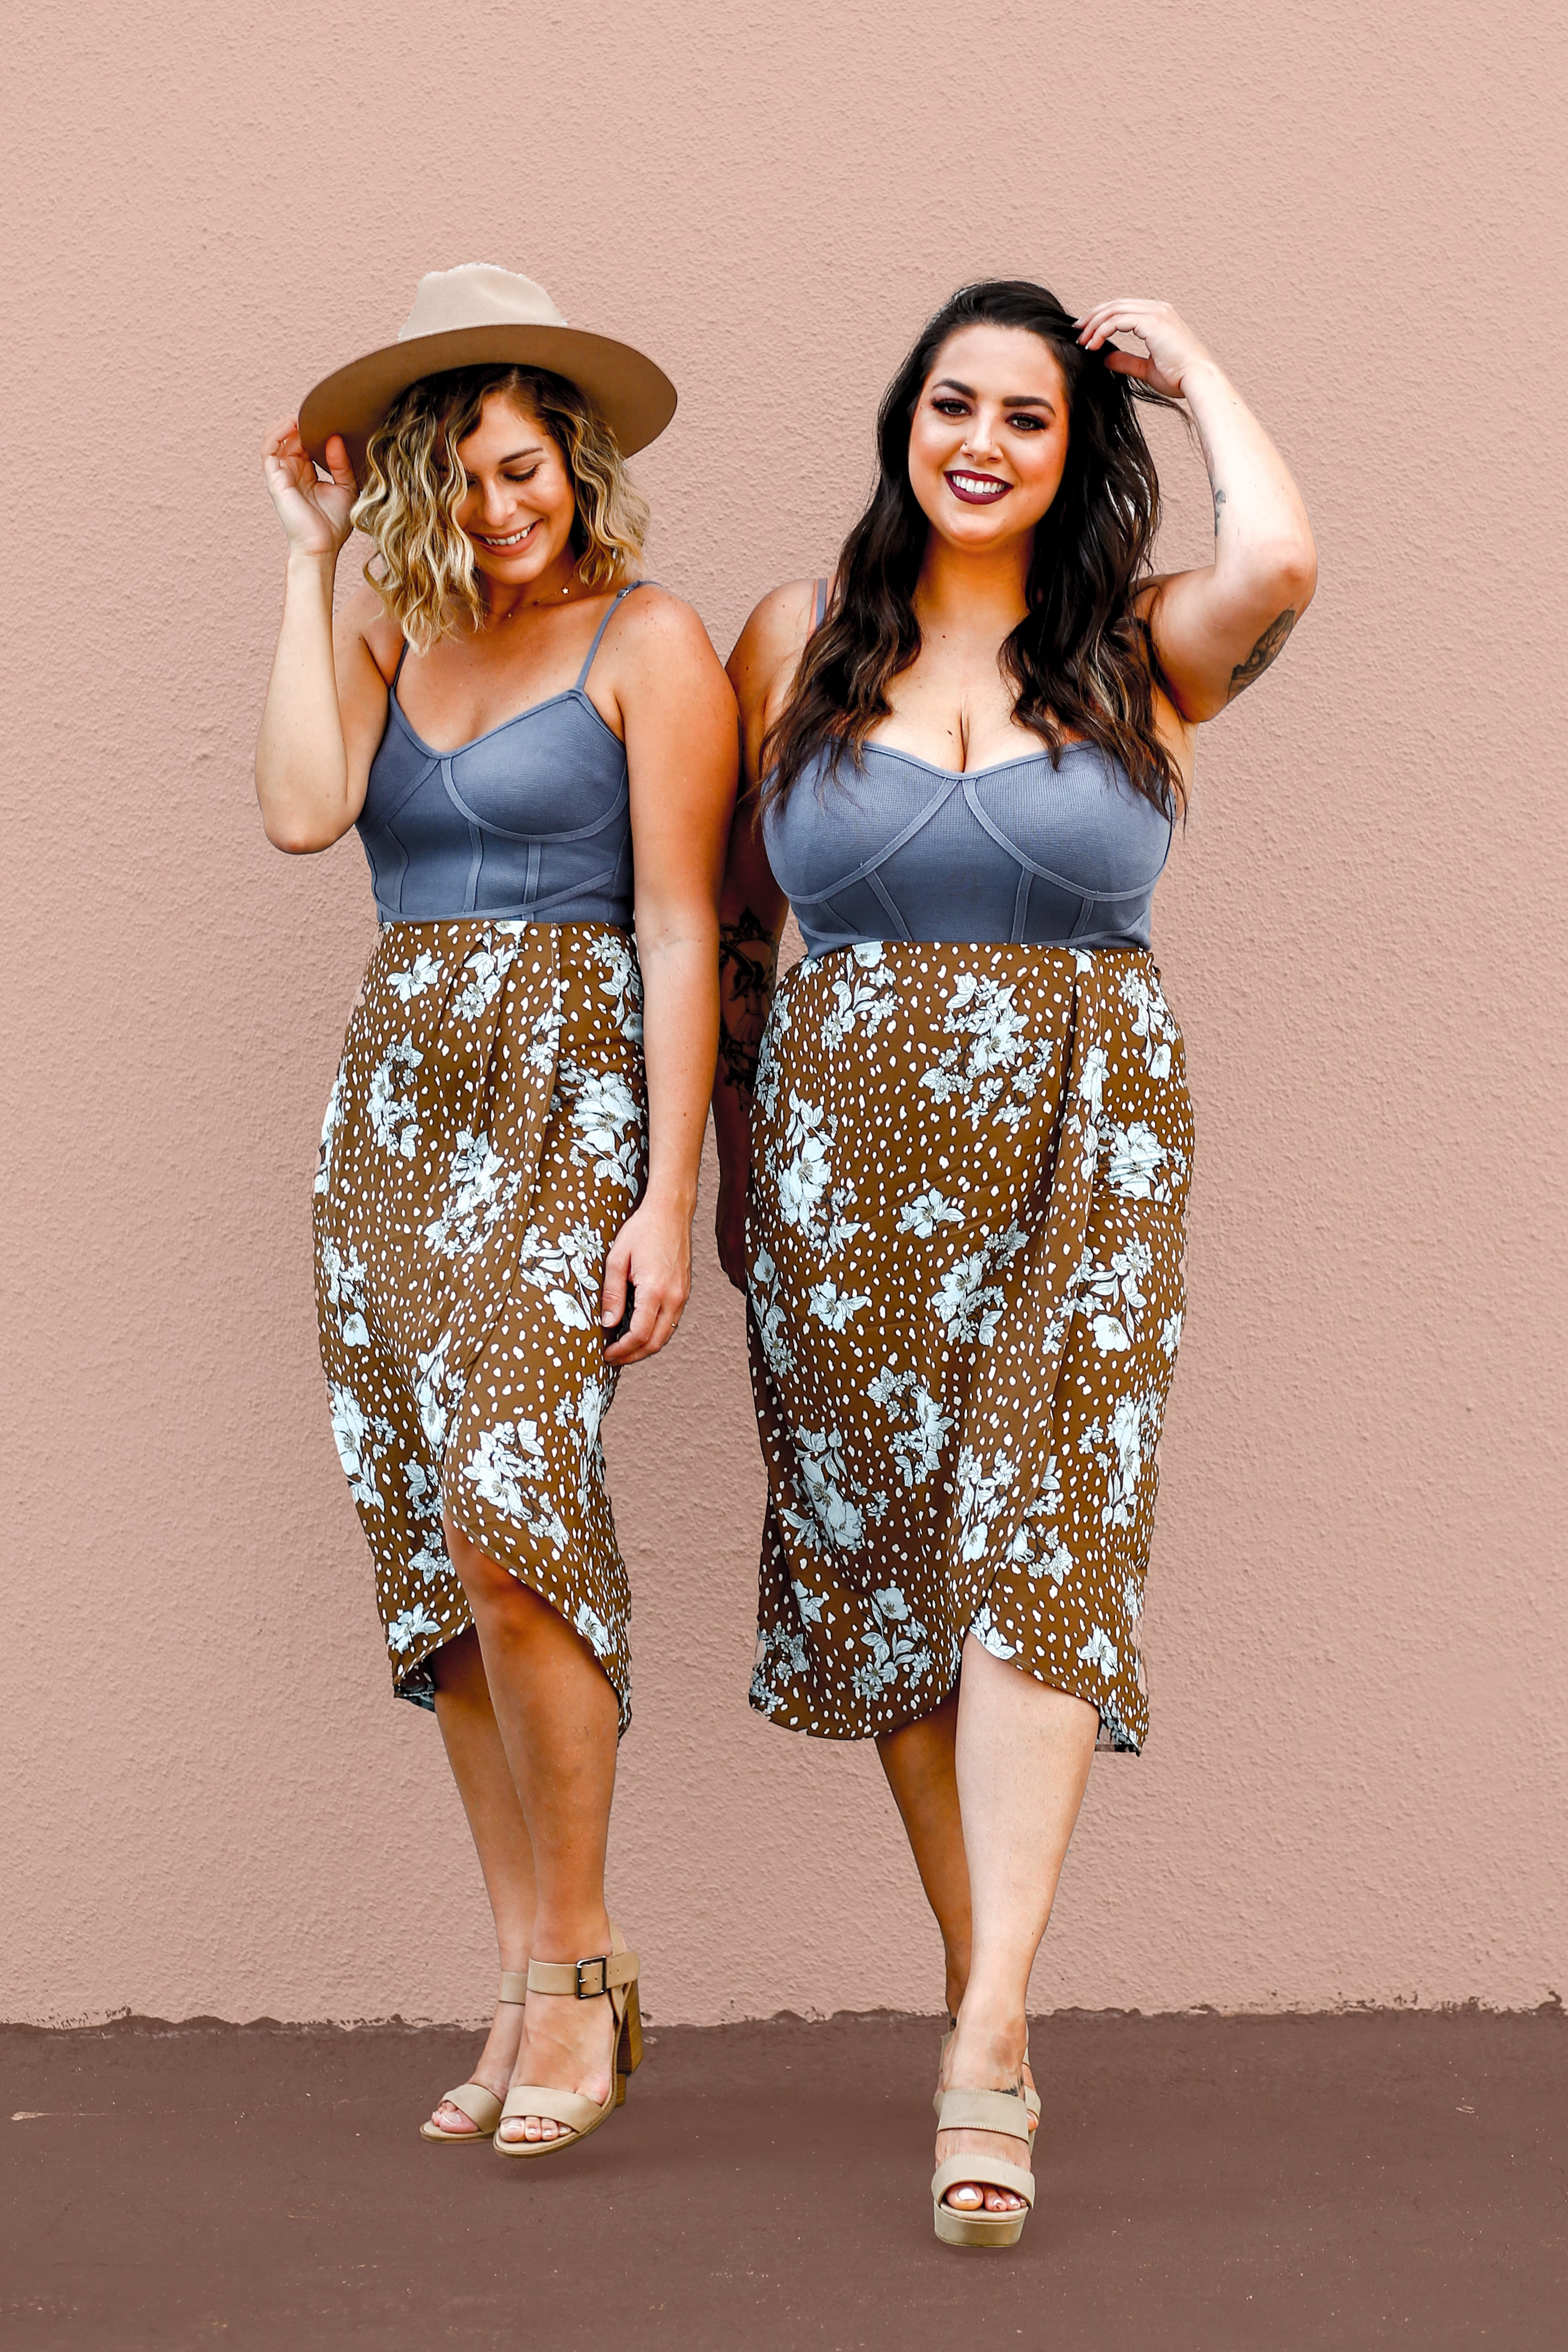 """MAVERICK EXLCUSIVE! SAME FABRIC AS OUR KENT PANTS. FAUX WRAP STYLE SKIRT. MIDI LENGTH. ZIP UP BACK. NO ELASTIC ON WAIST. 100% POLYESTER. STEPHANIE IS 5'4"""" SIZE 4 WEARING A SMALL. XS 0-2 S 4-6 M 8-10 L 10-12 XL 12-14"""